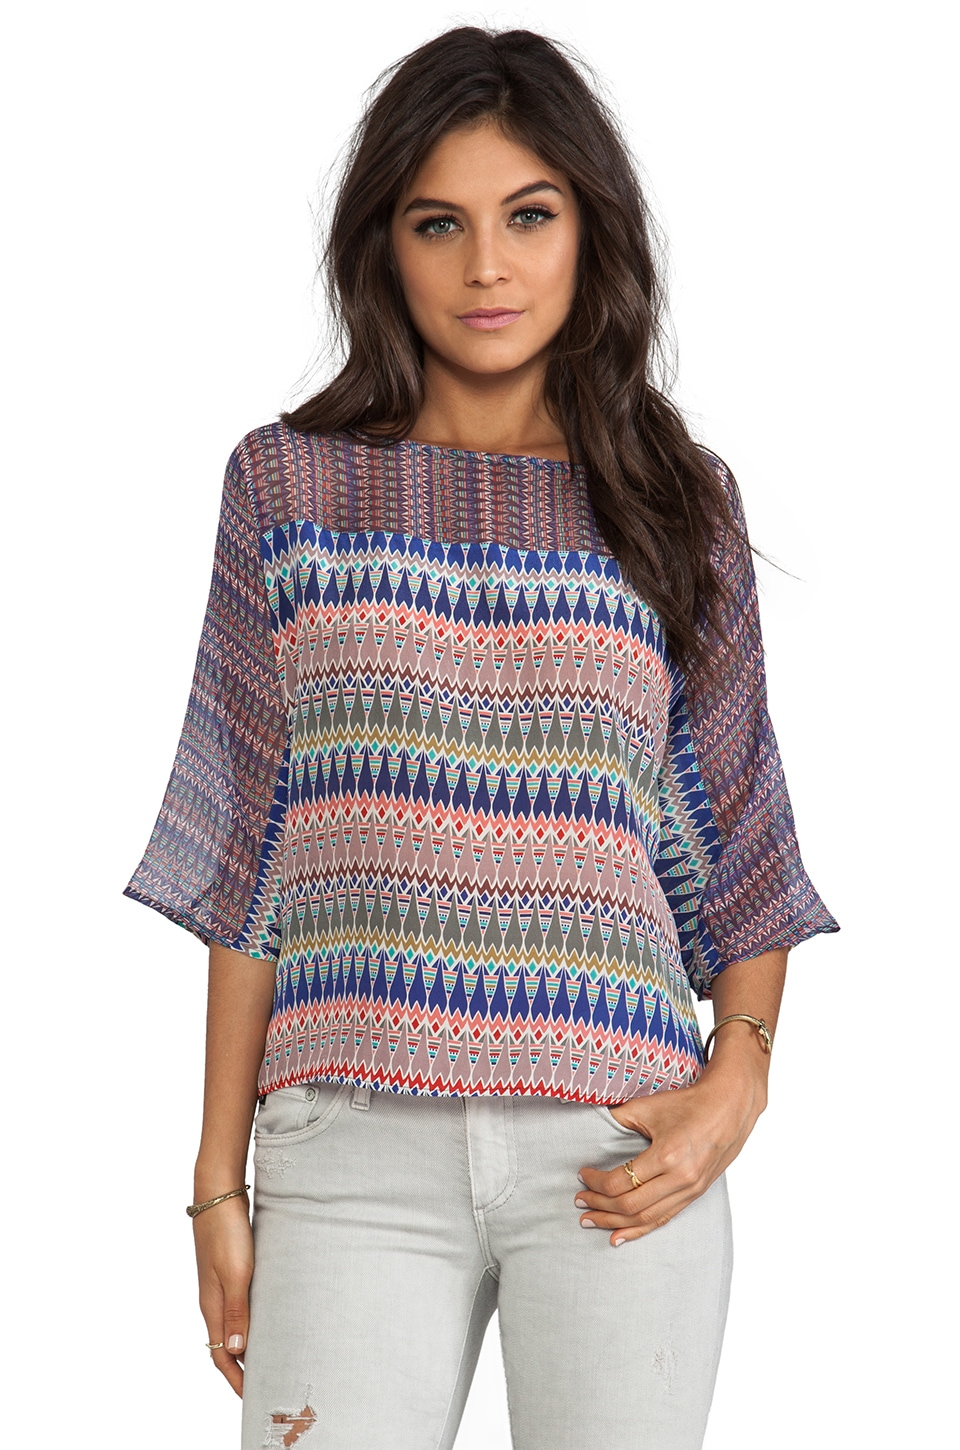 Gypsy 05 Oversize Top in Multi